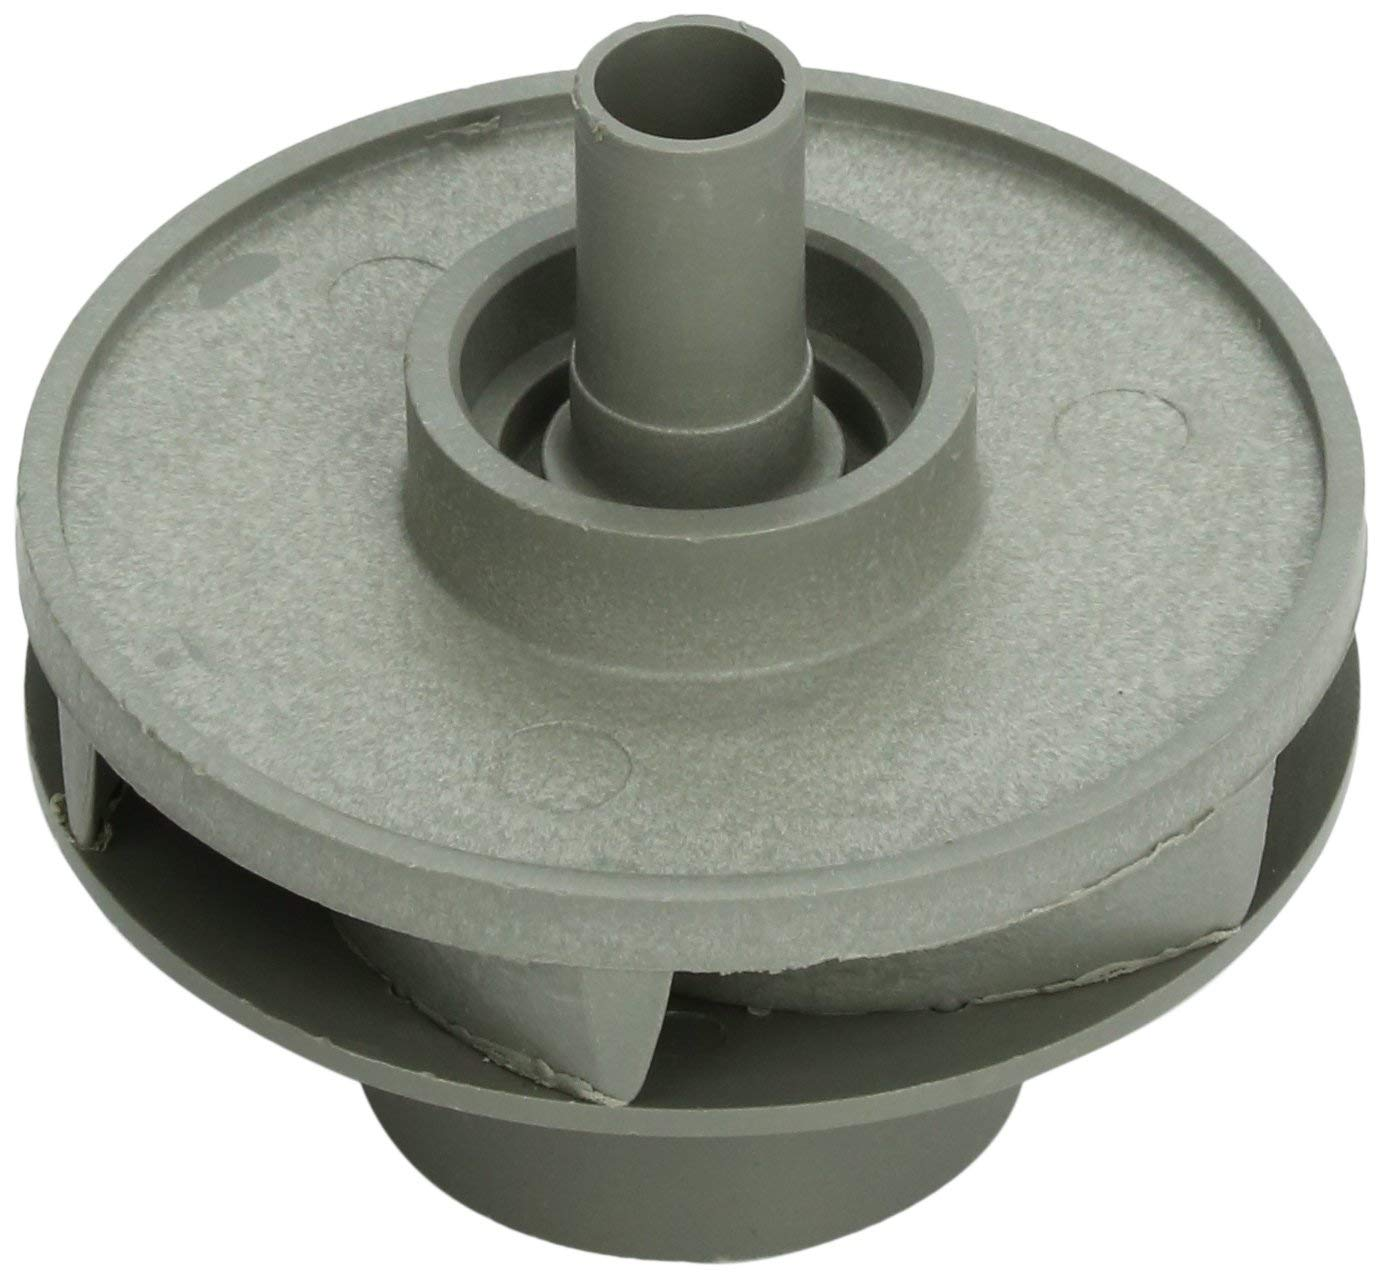 Waterway 310-4010 Gray Impeller Replacement for Waterway Hi-Flo Discharge Series 1.5-Horsepower Pool and Spa Pump